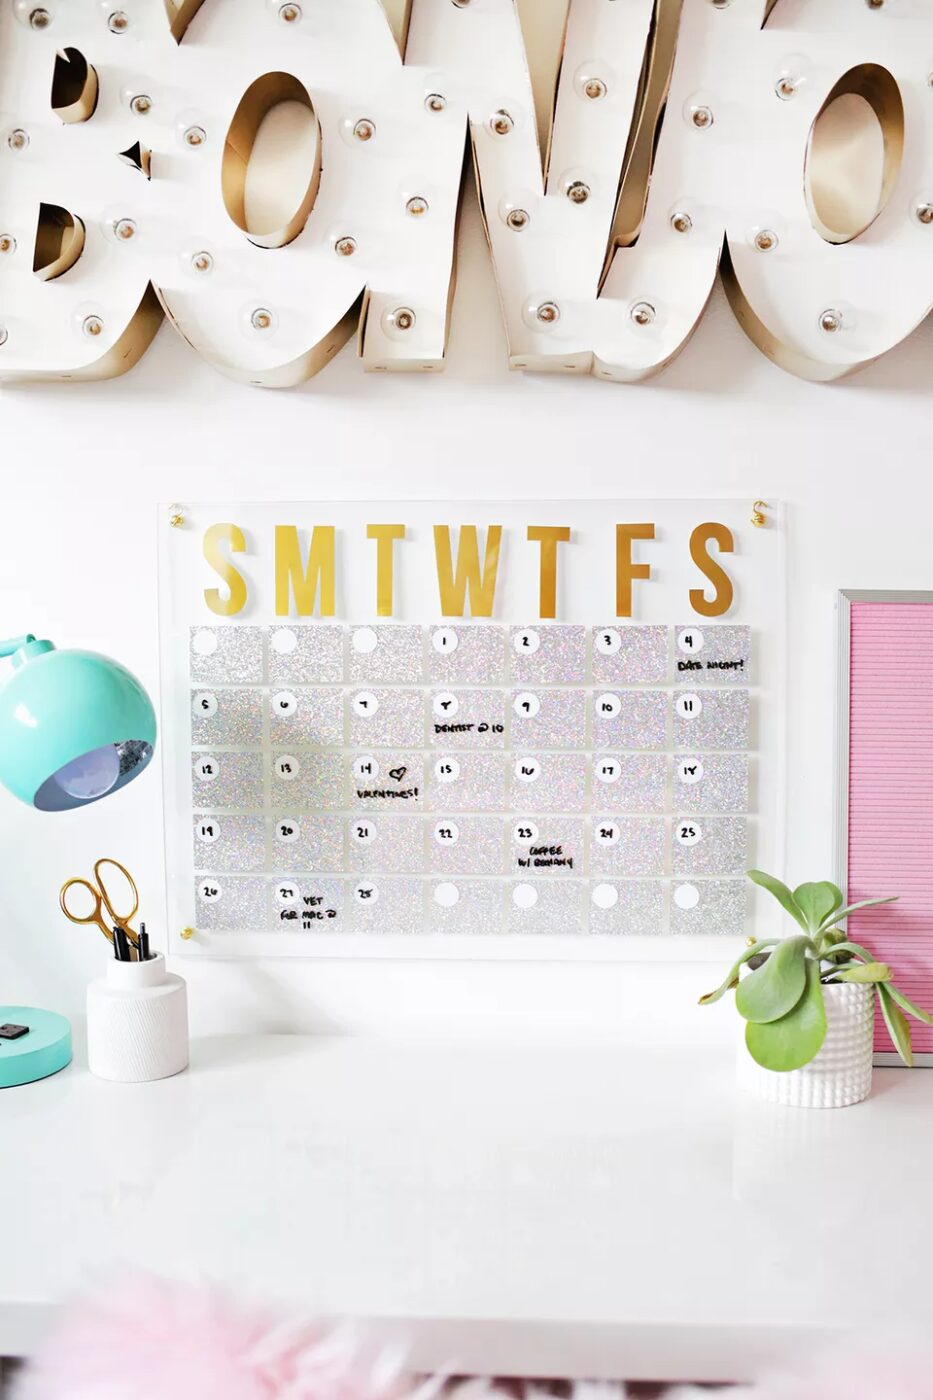 19 Simple DIY Office Organization Ideas to Boost Productivity